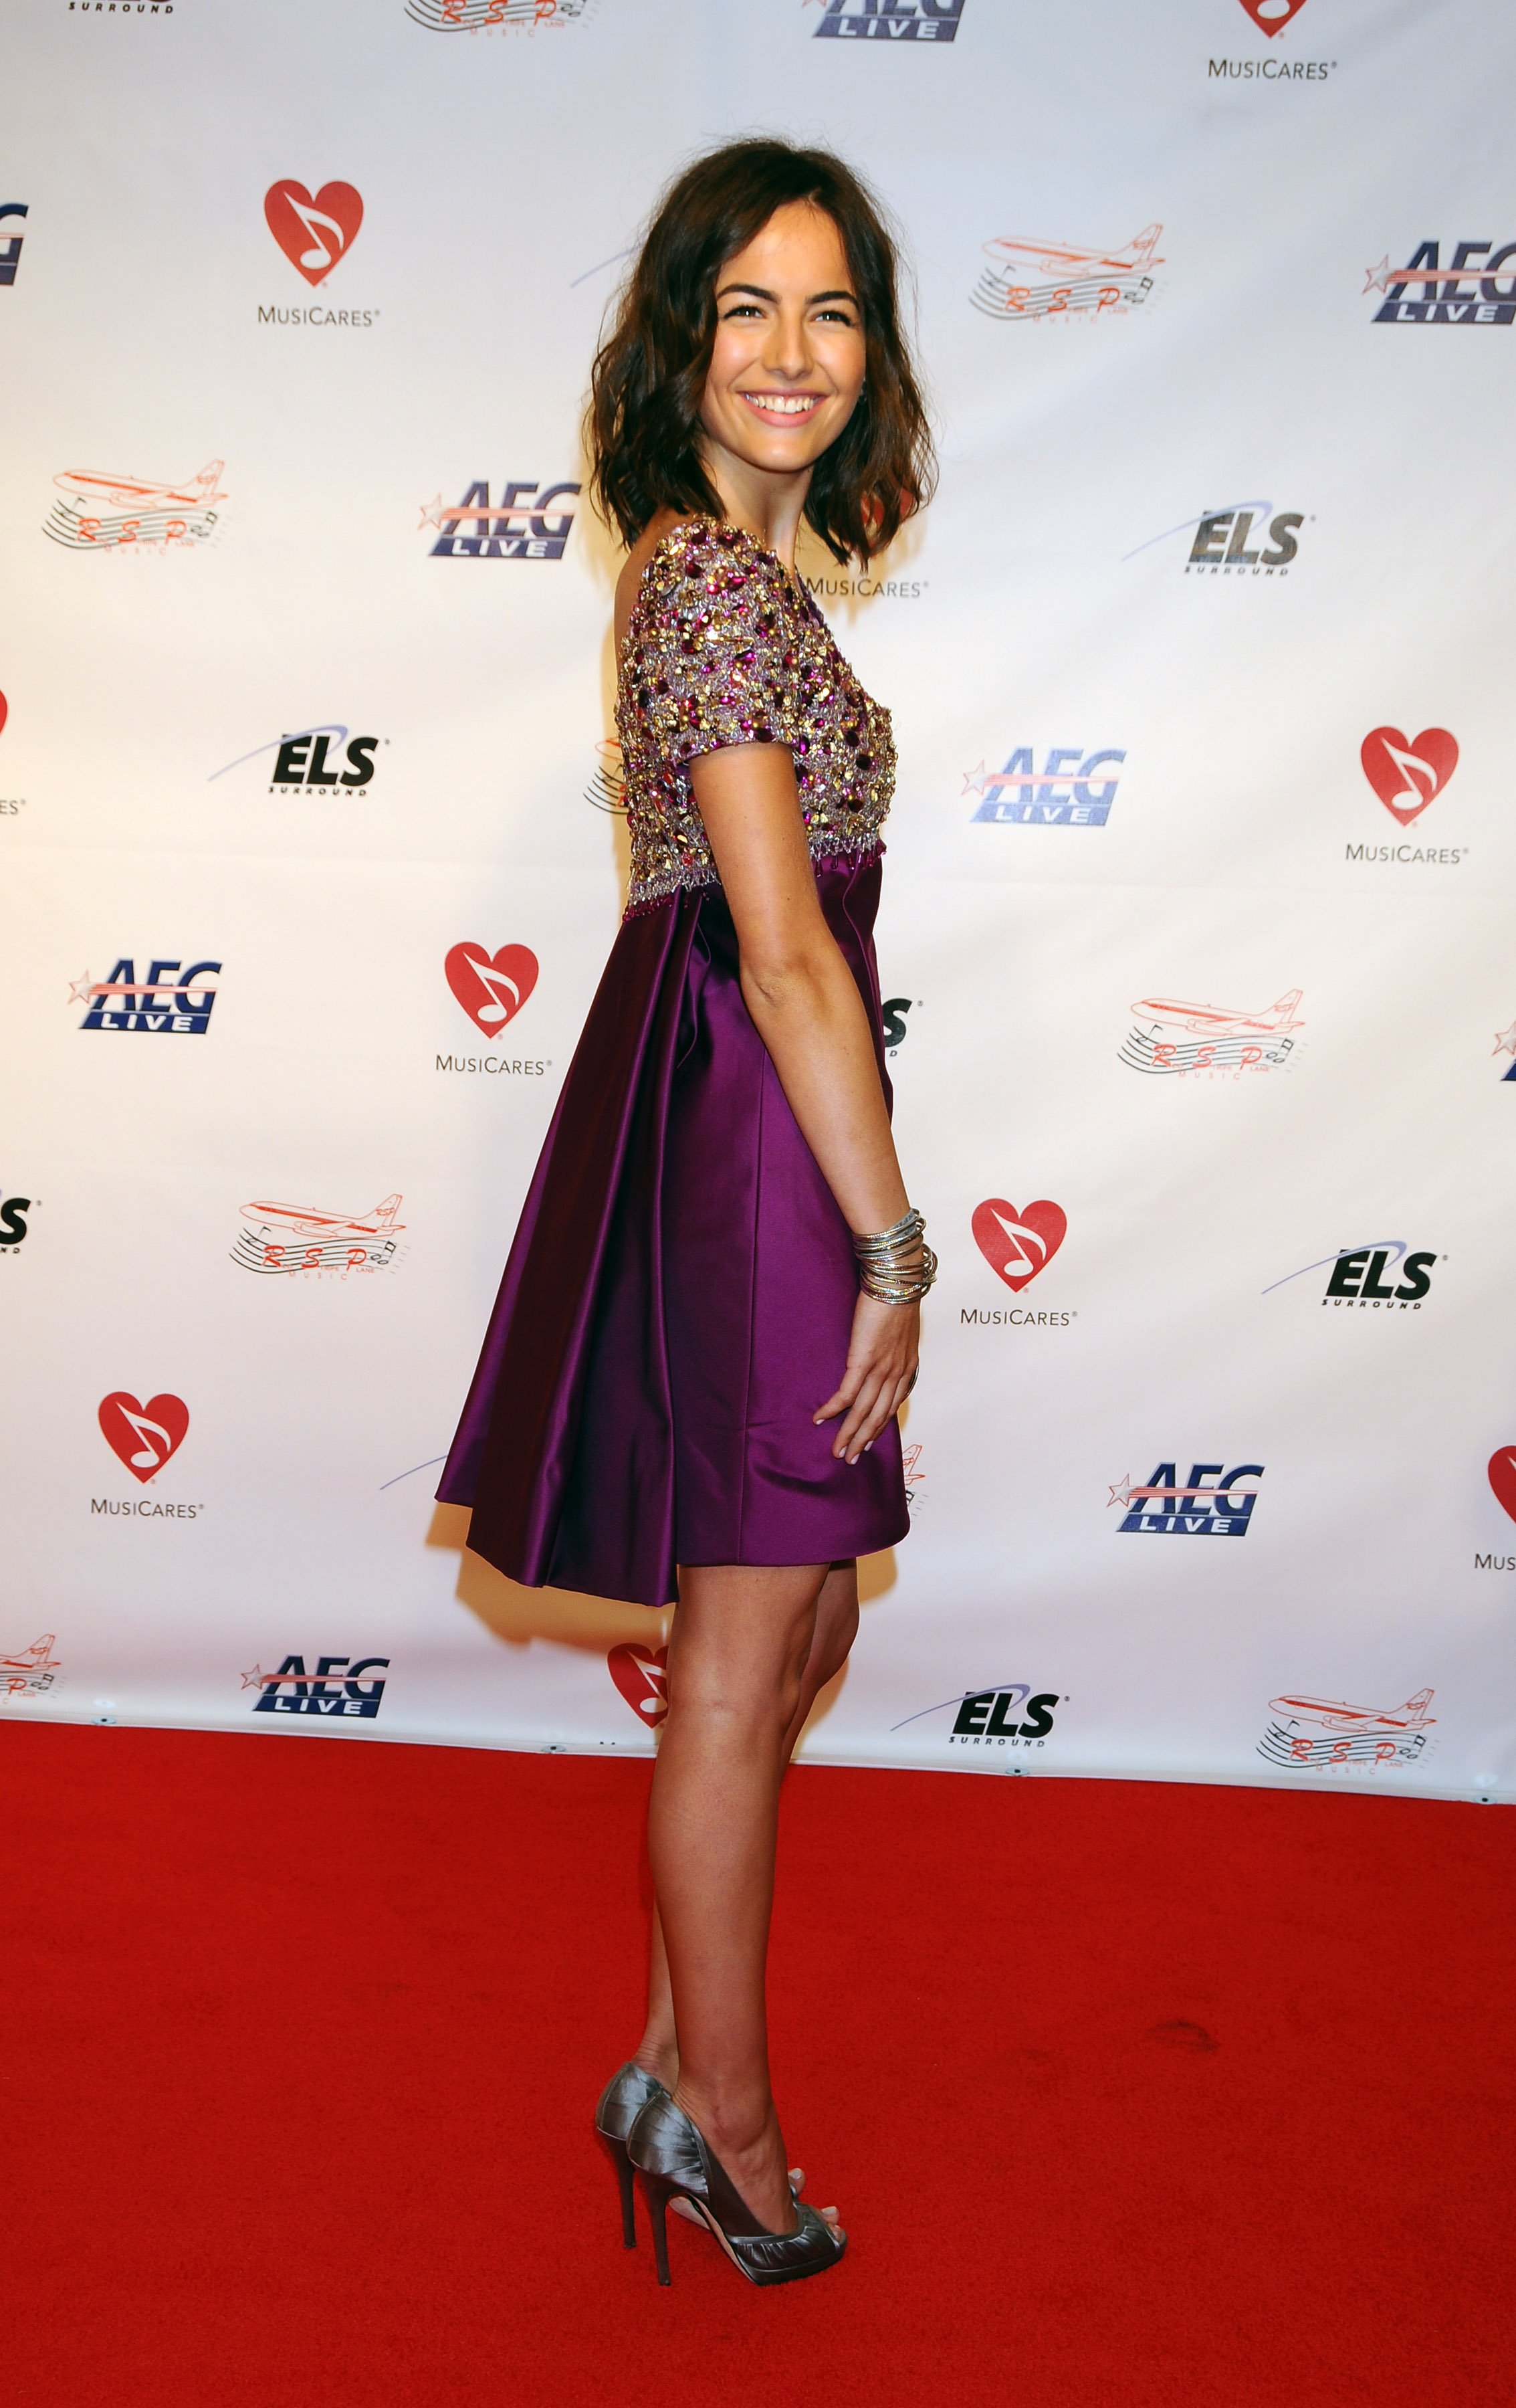 07388_Celebutopia-Camilla_Belle_arrives_at_the_2009_MusiCares_Person_Of_The_Year_Gala-07_122_228lo.JPG